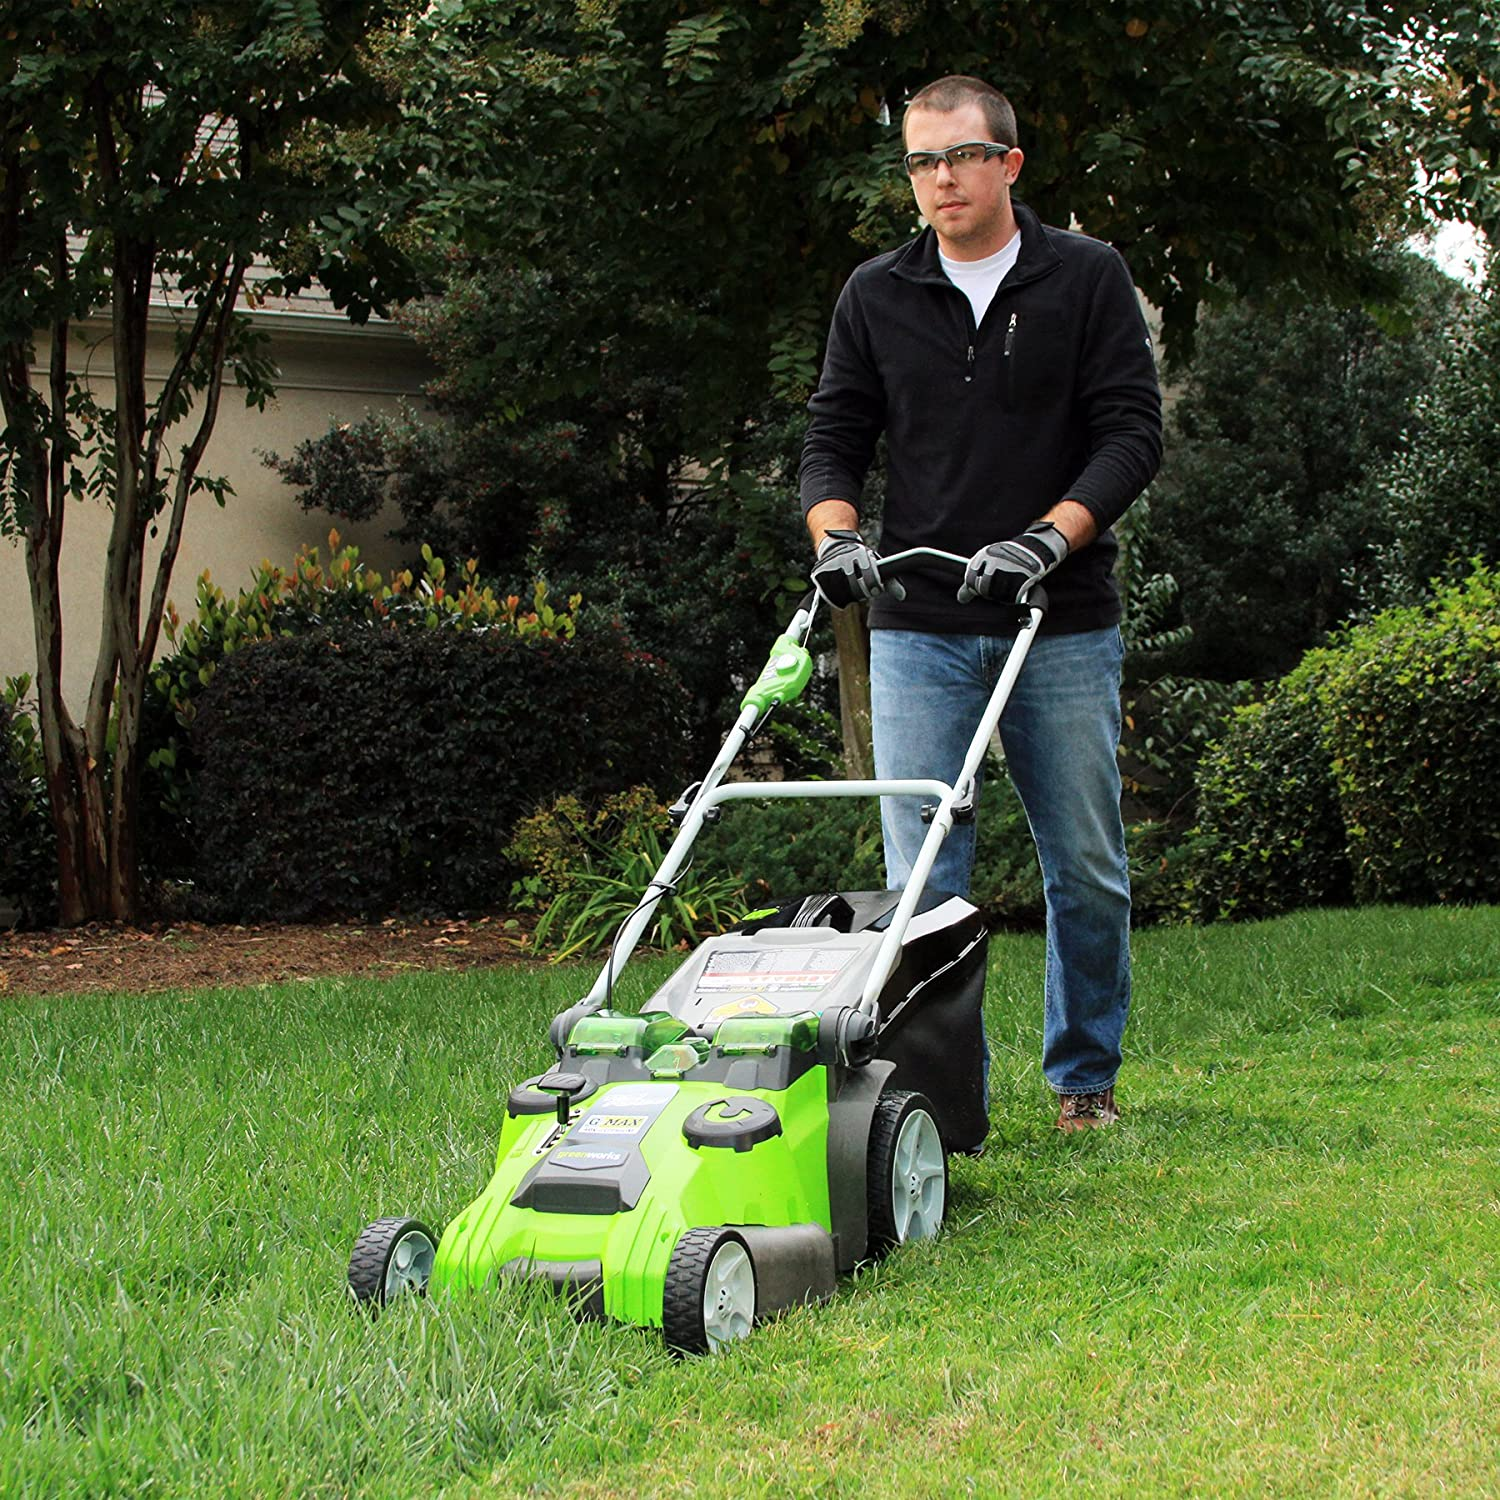 Greenworks Cordless Twin Force Lawn Mower review